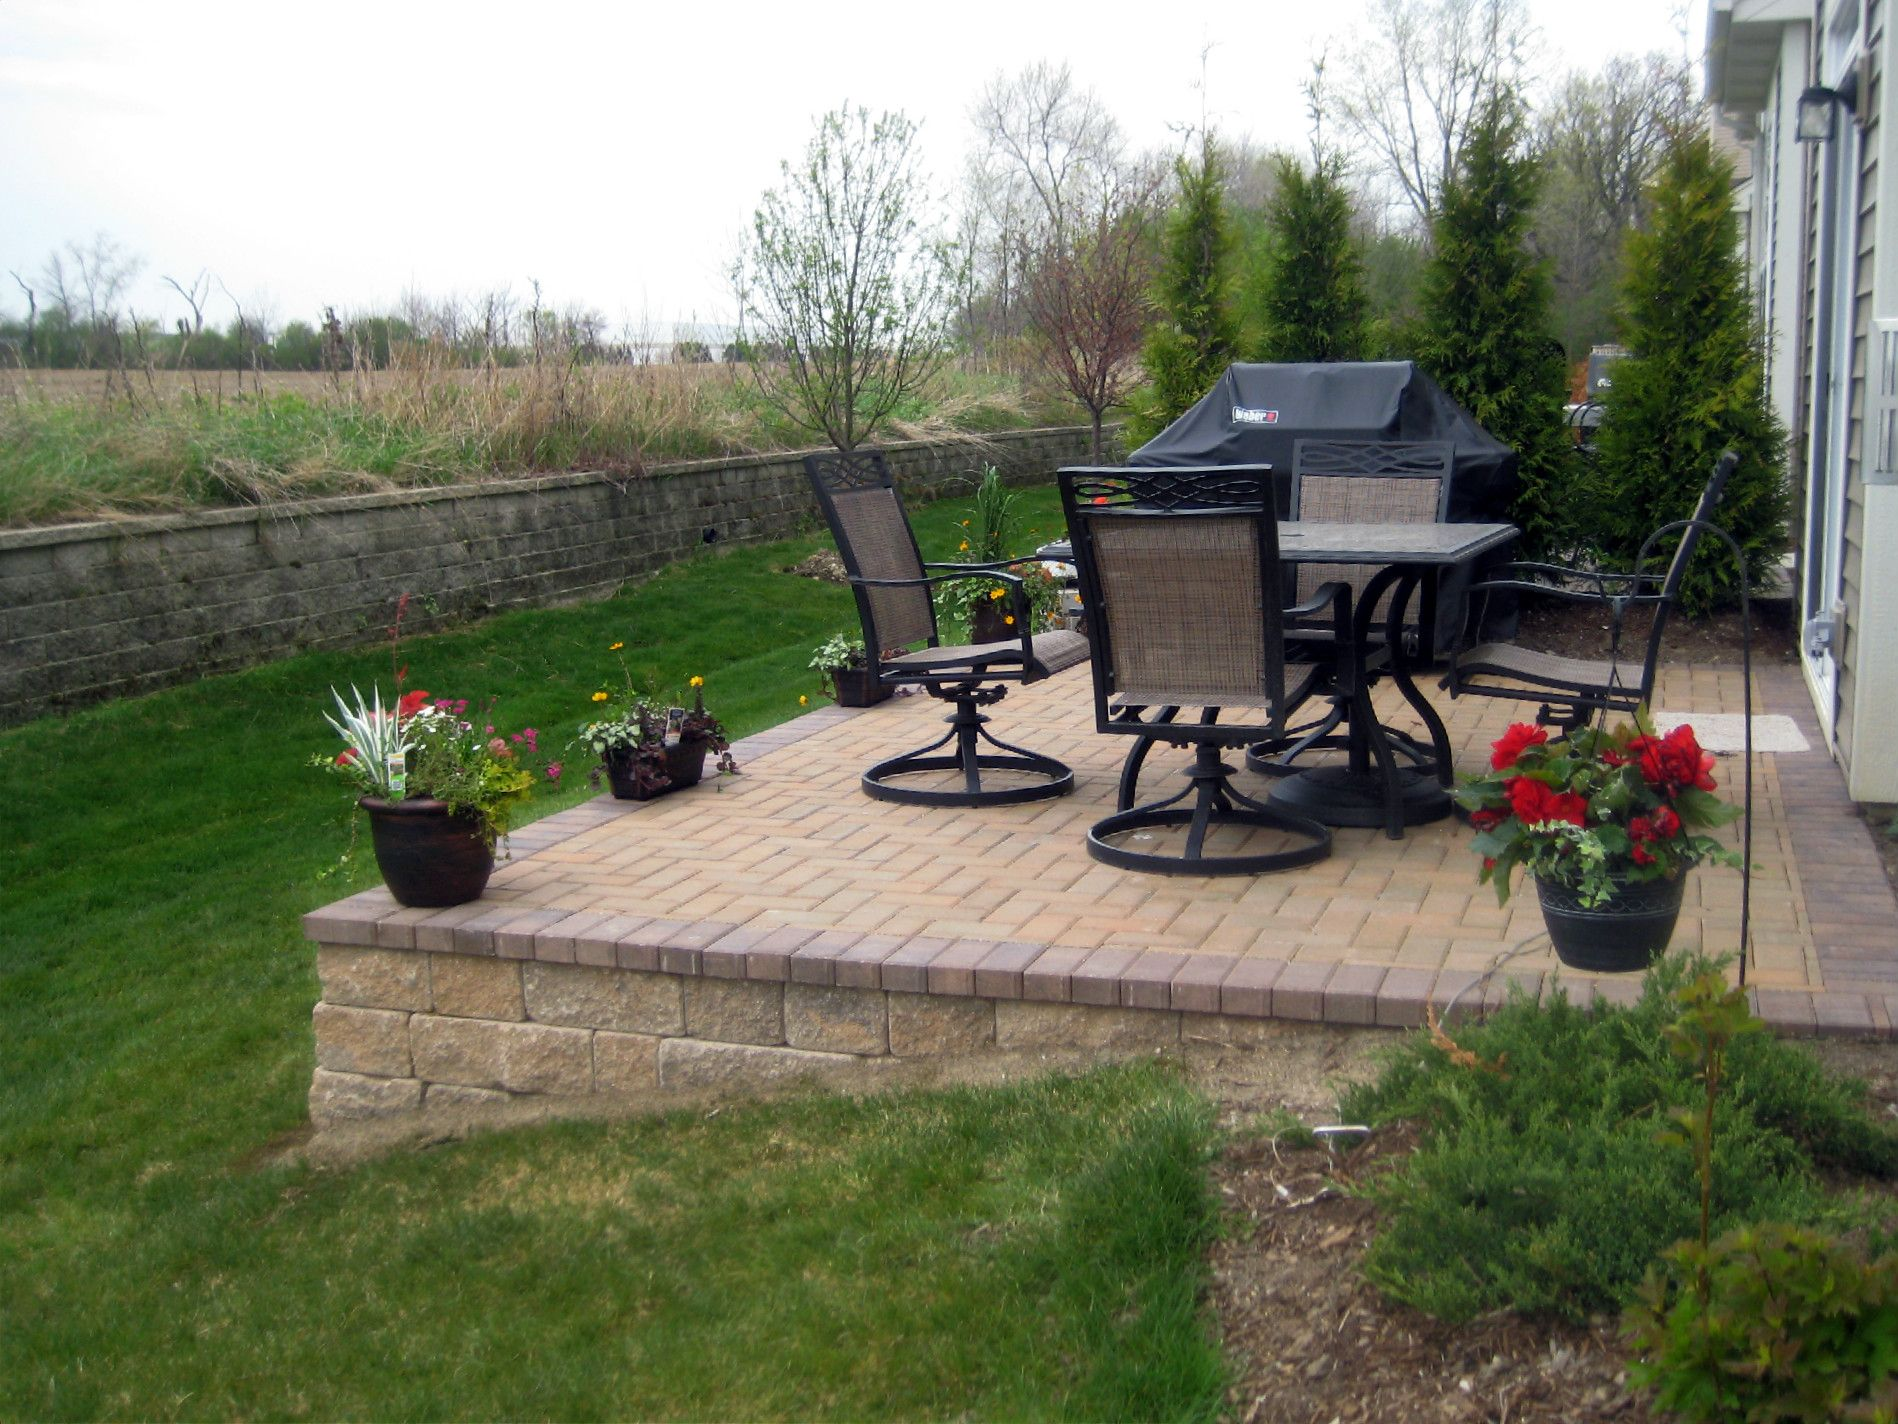 Belgard Holland Stone Patio By Aurora, IL Patio Builder